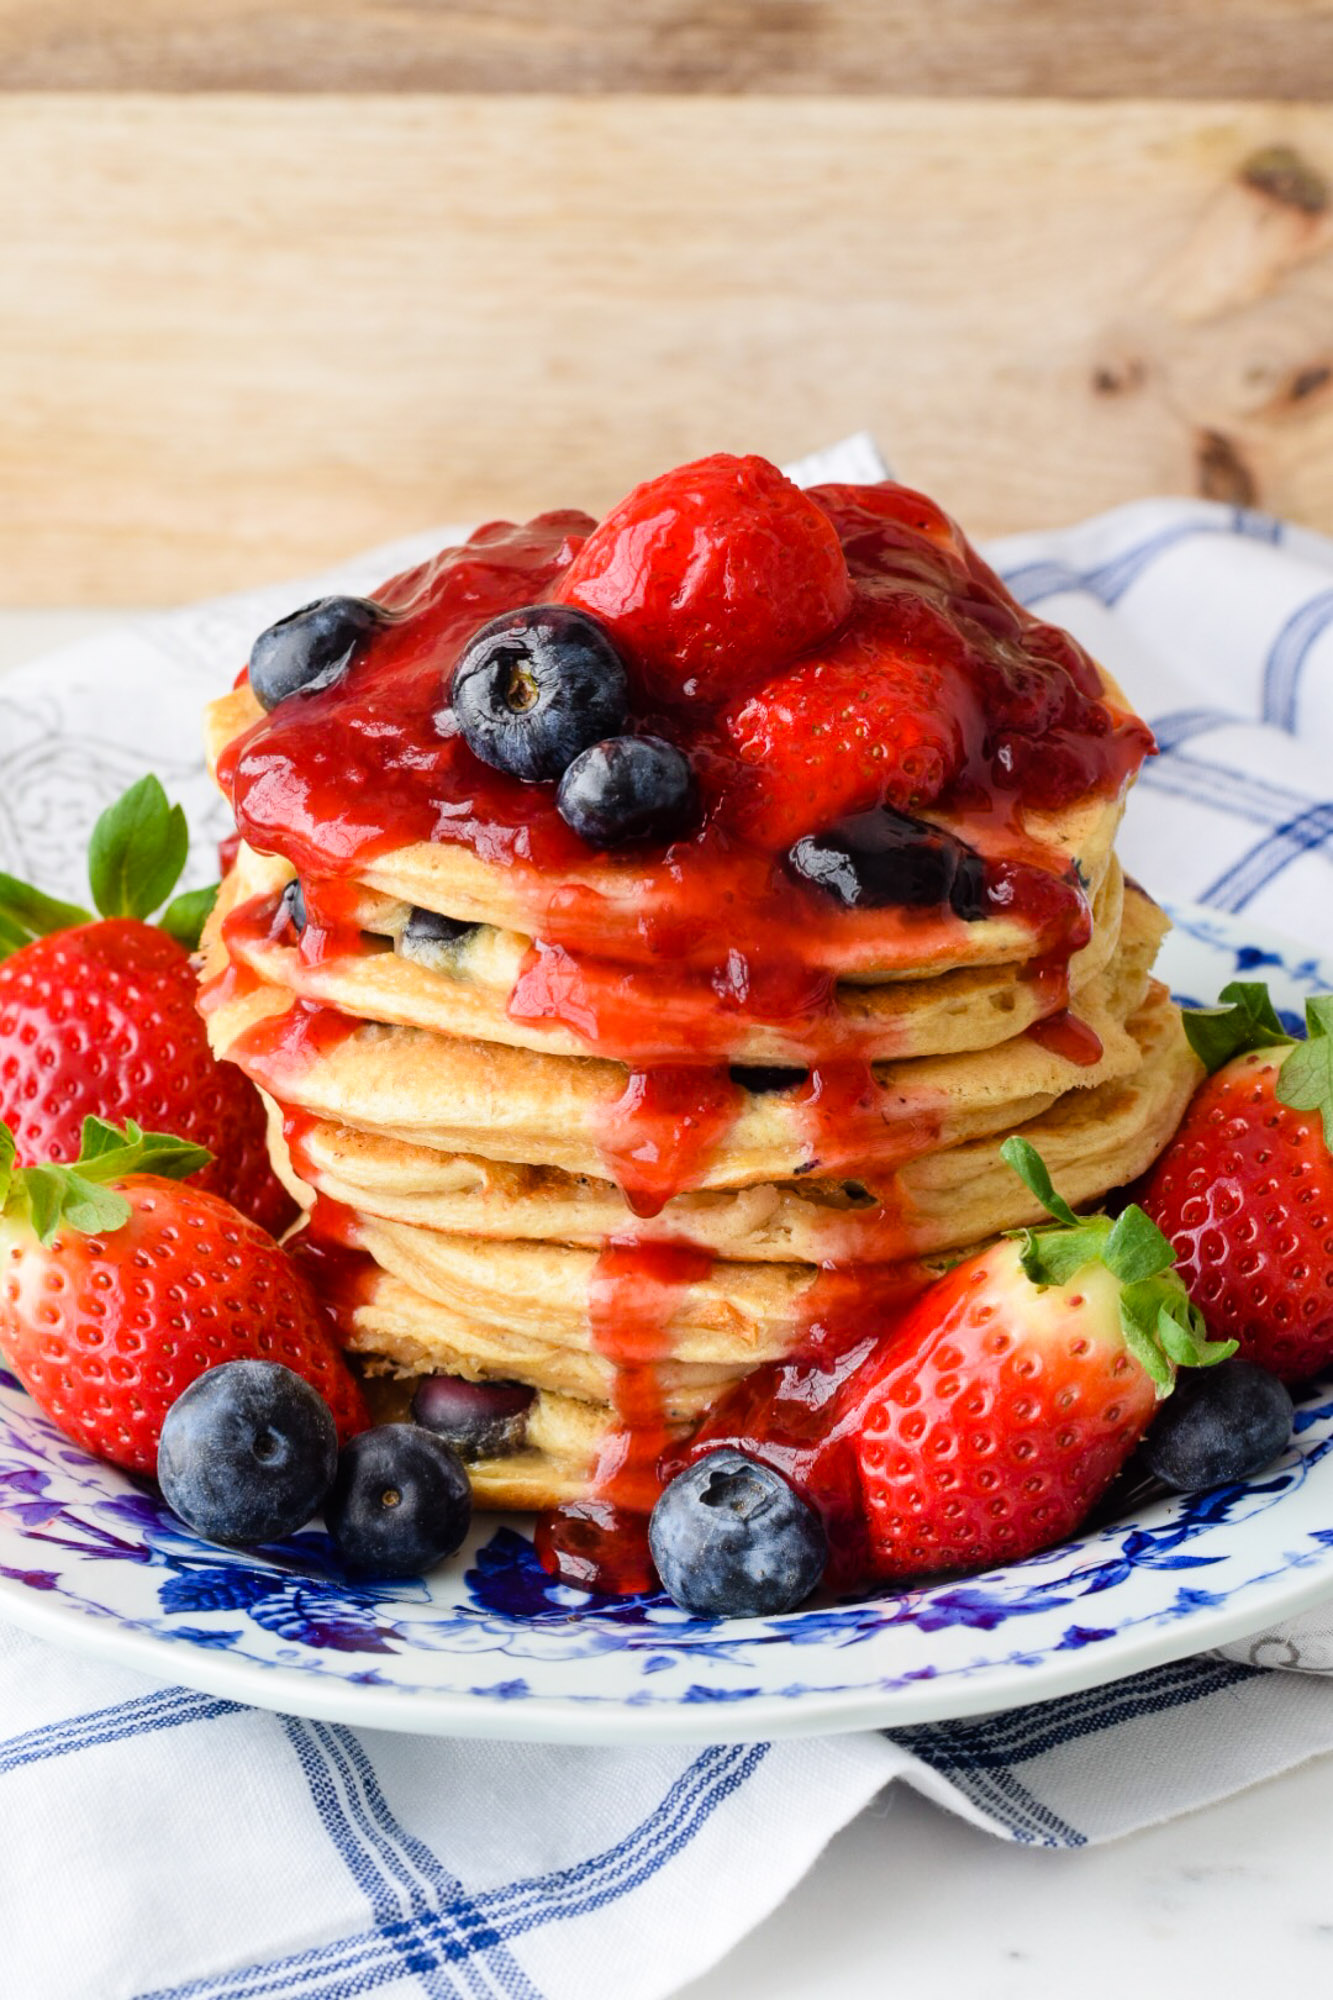 Greek Yogurt and Blueberry Protein Pancakes with Strawberry Sauce